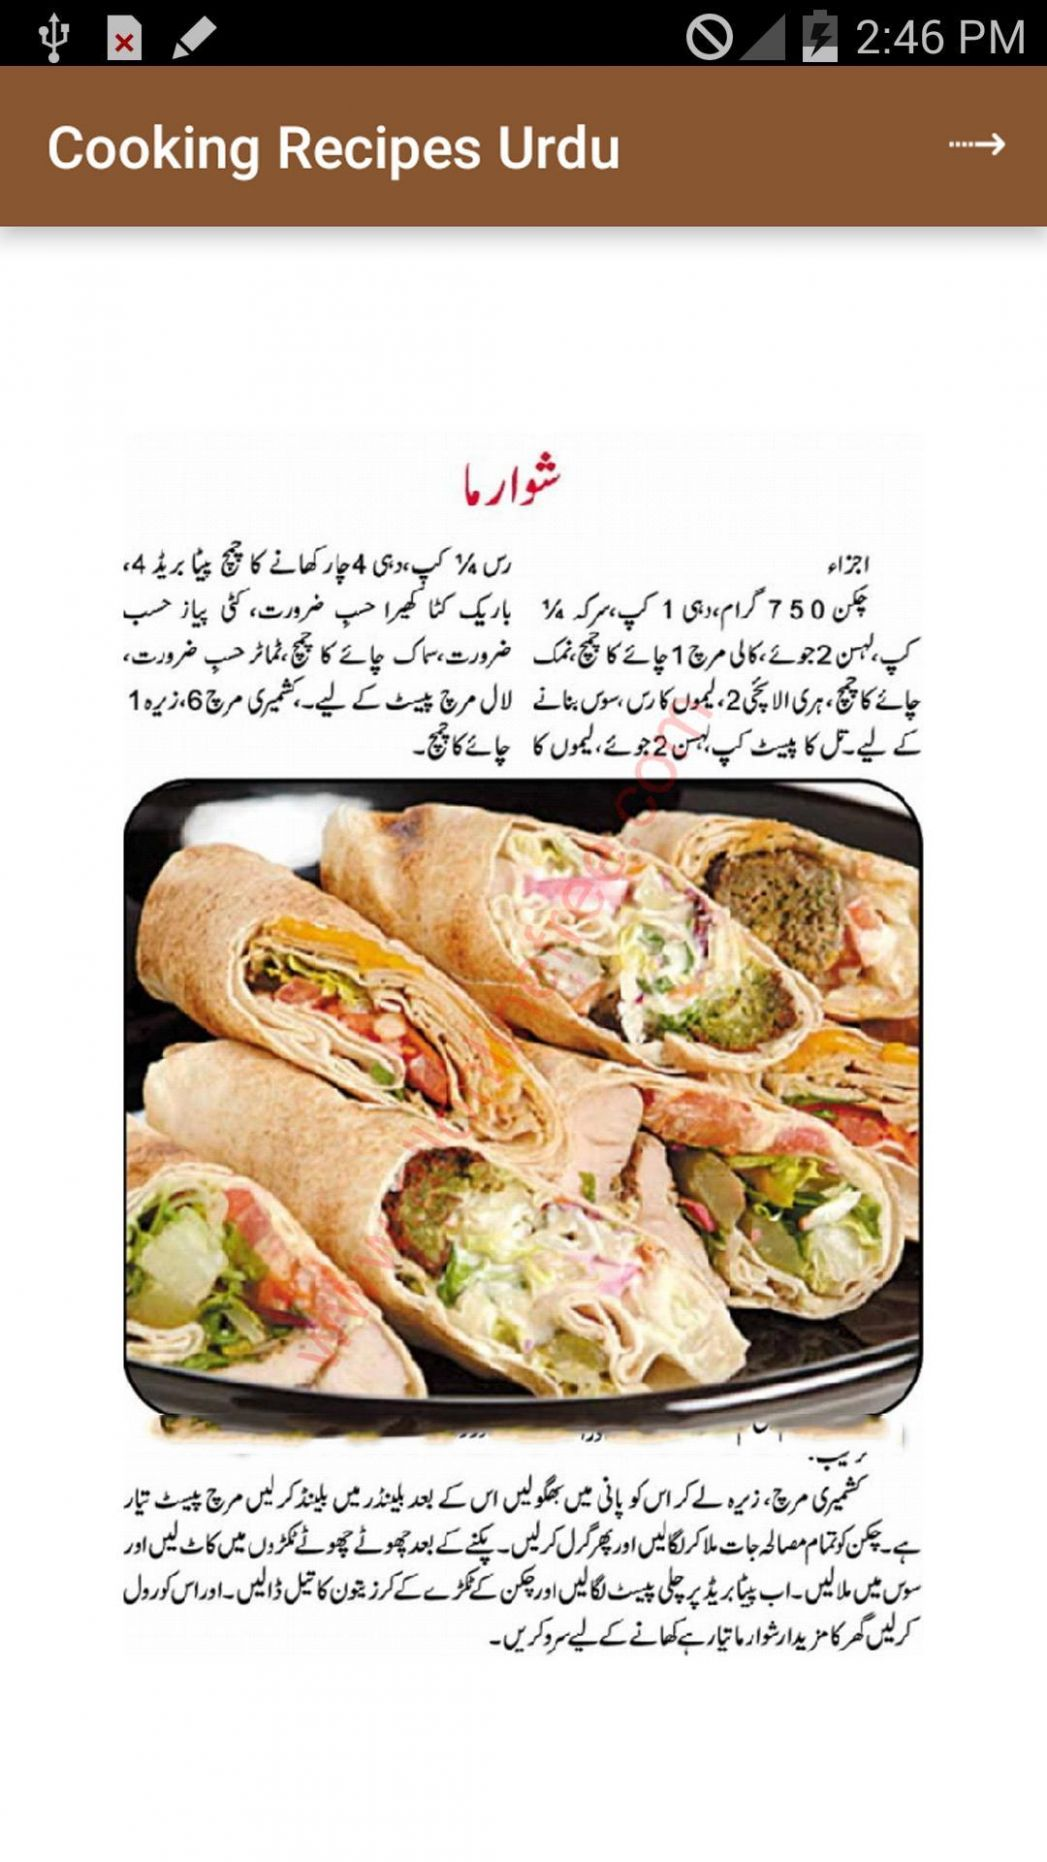 Cooking Recipes in Urdu for Android - APK Download - Food Recipes Urdu